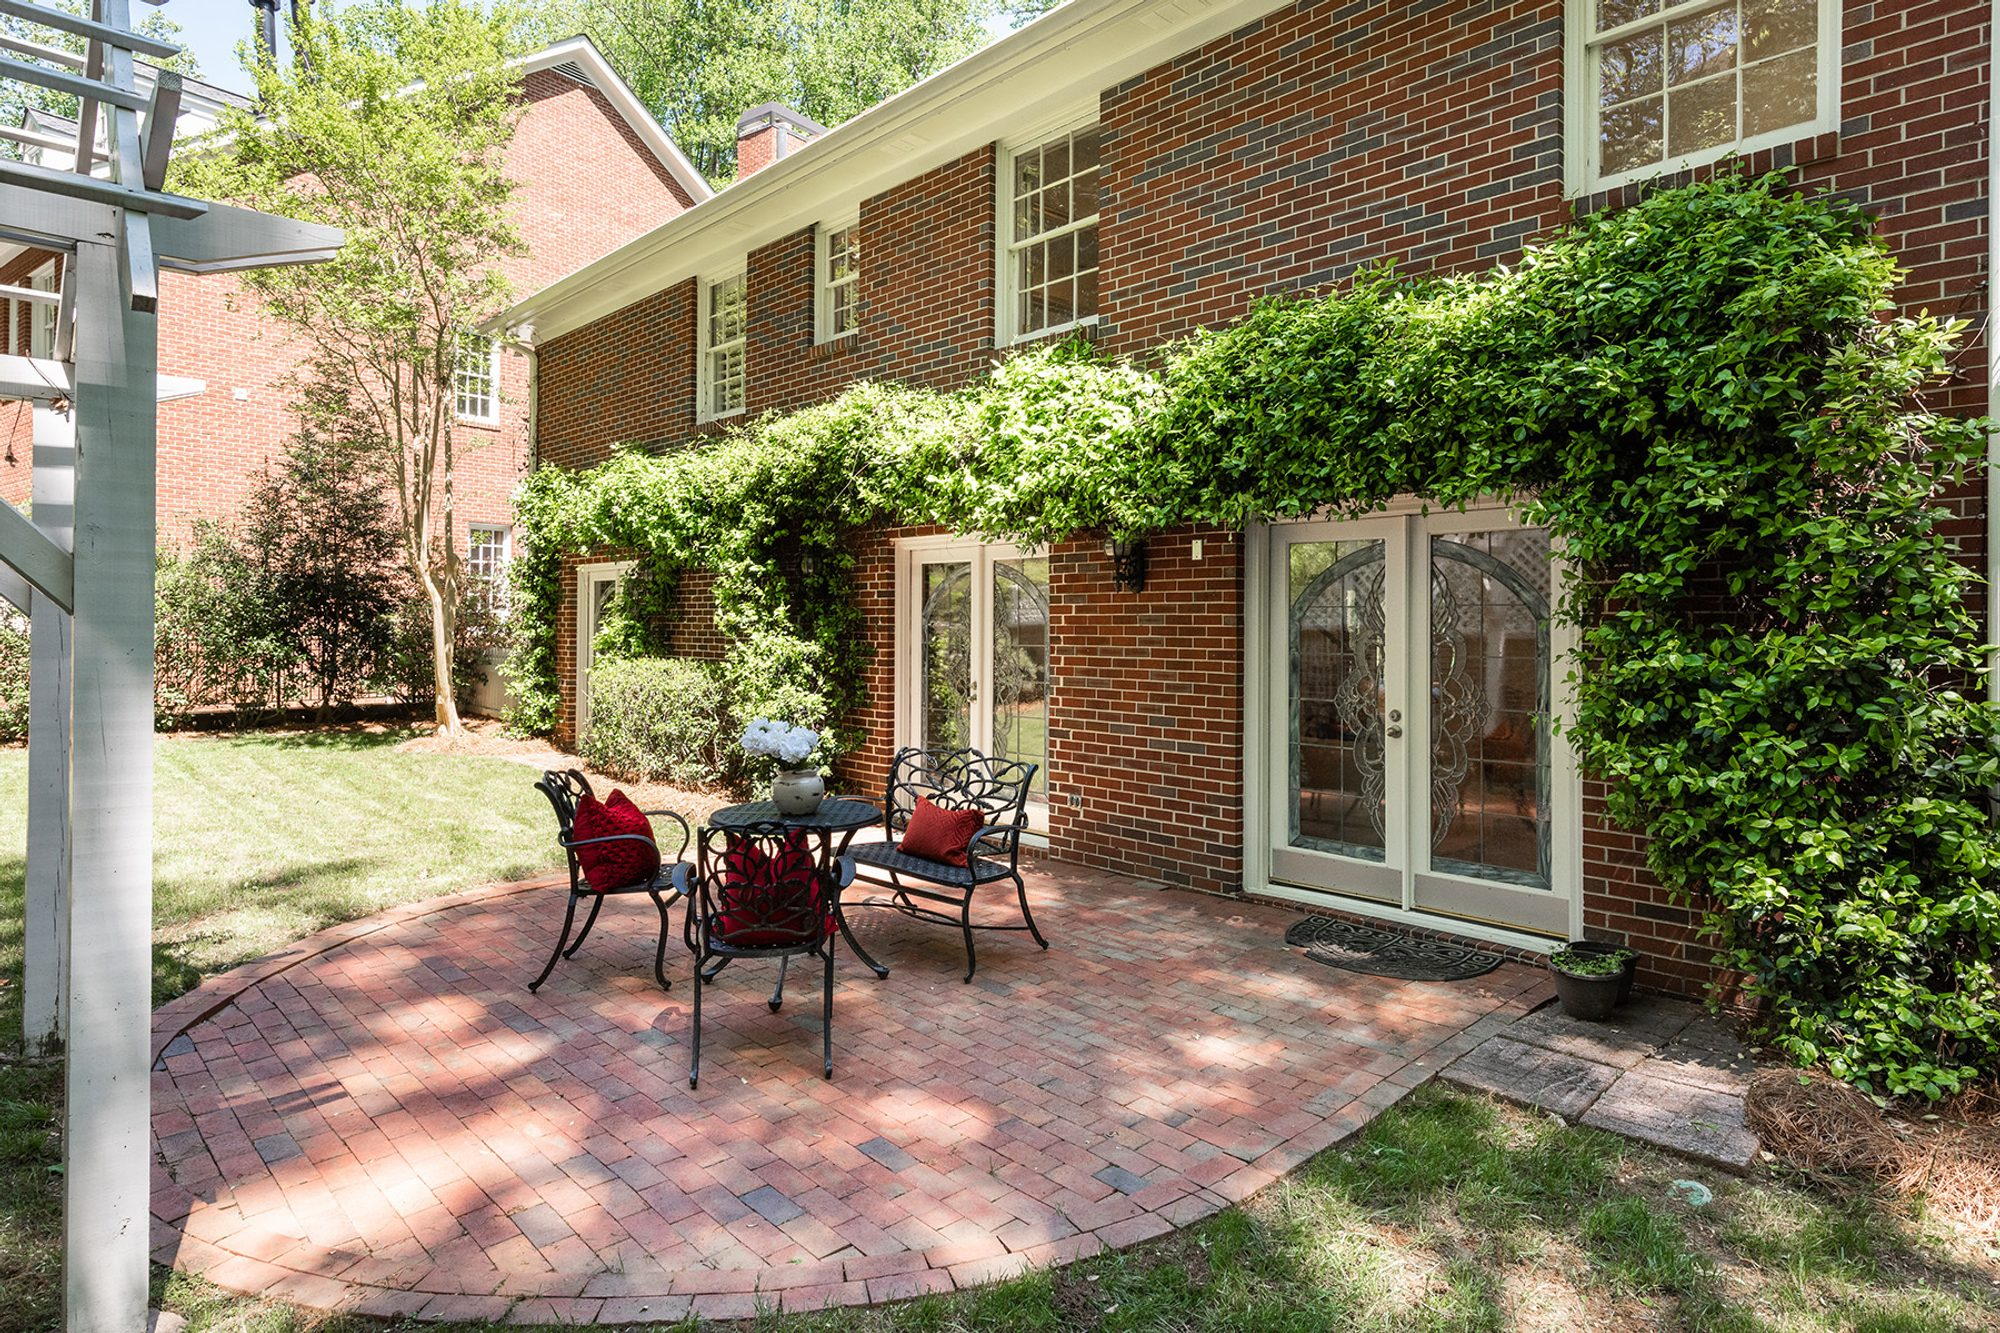 Simple red brick patio with a subway style pattern and brick border.